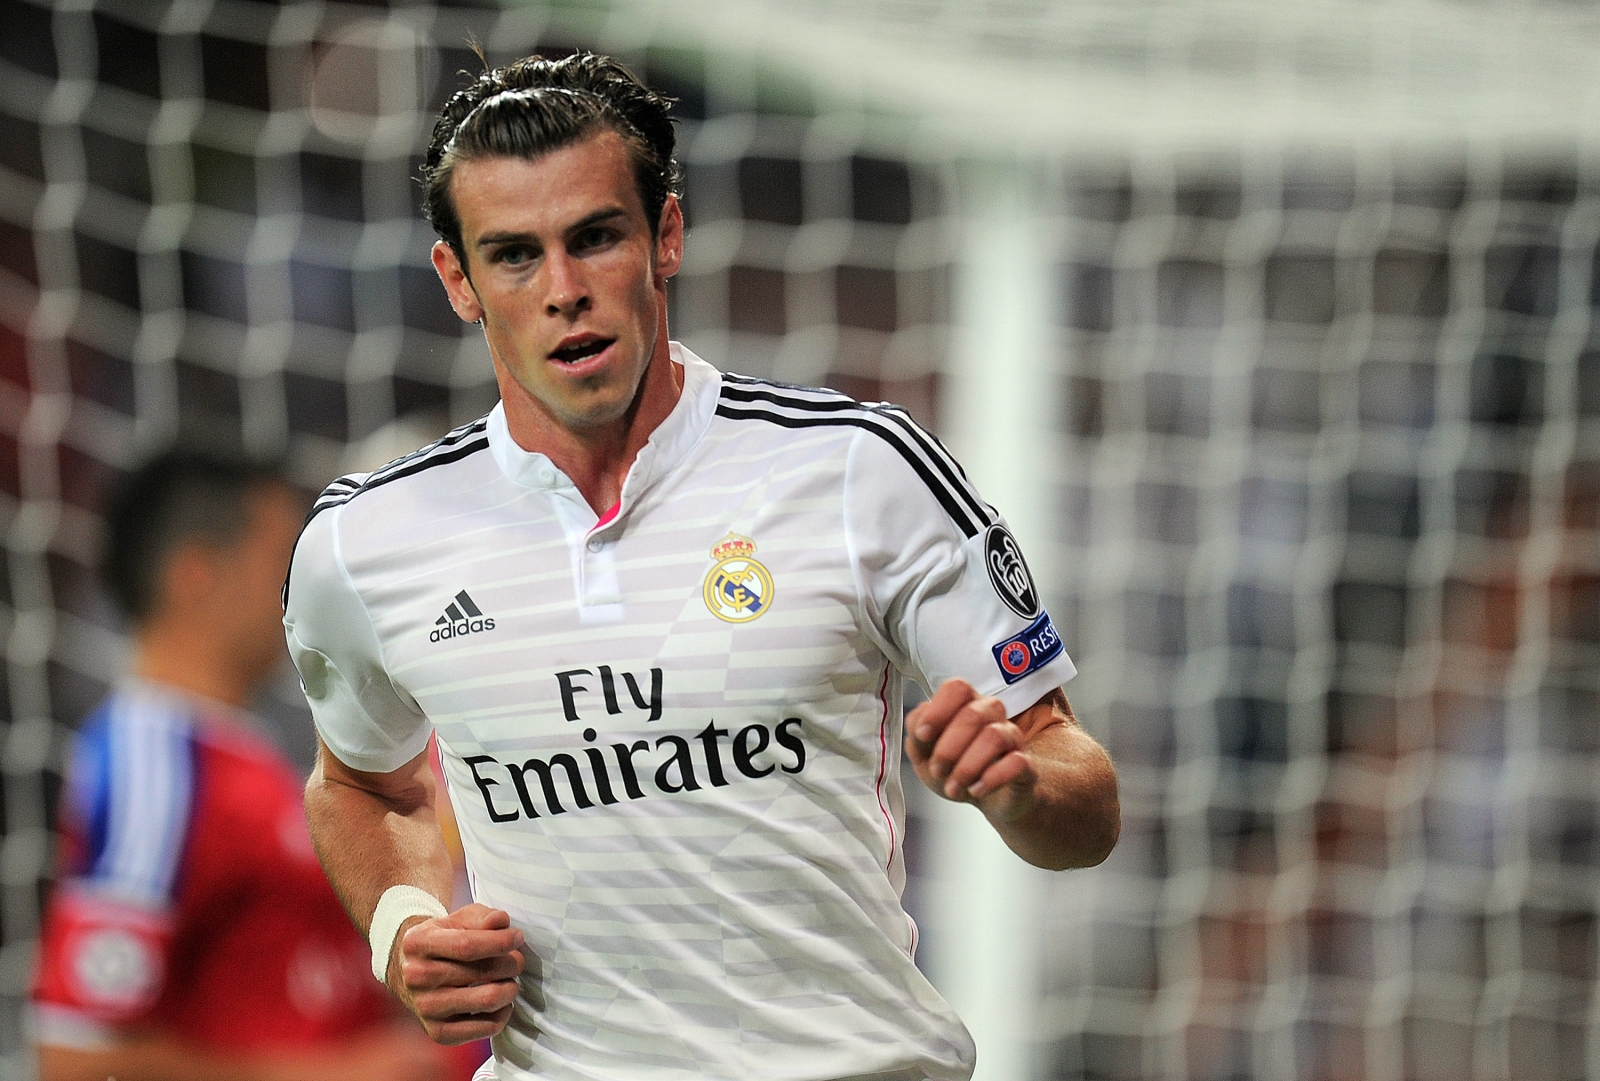 http://d.ibtimes.co.uk/en/full/1400004/gareth-bale.jpg